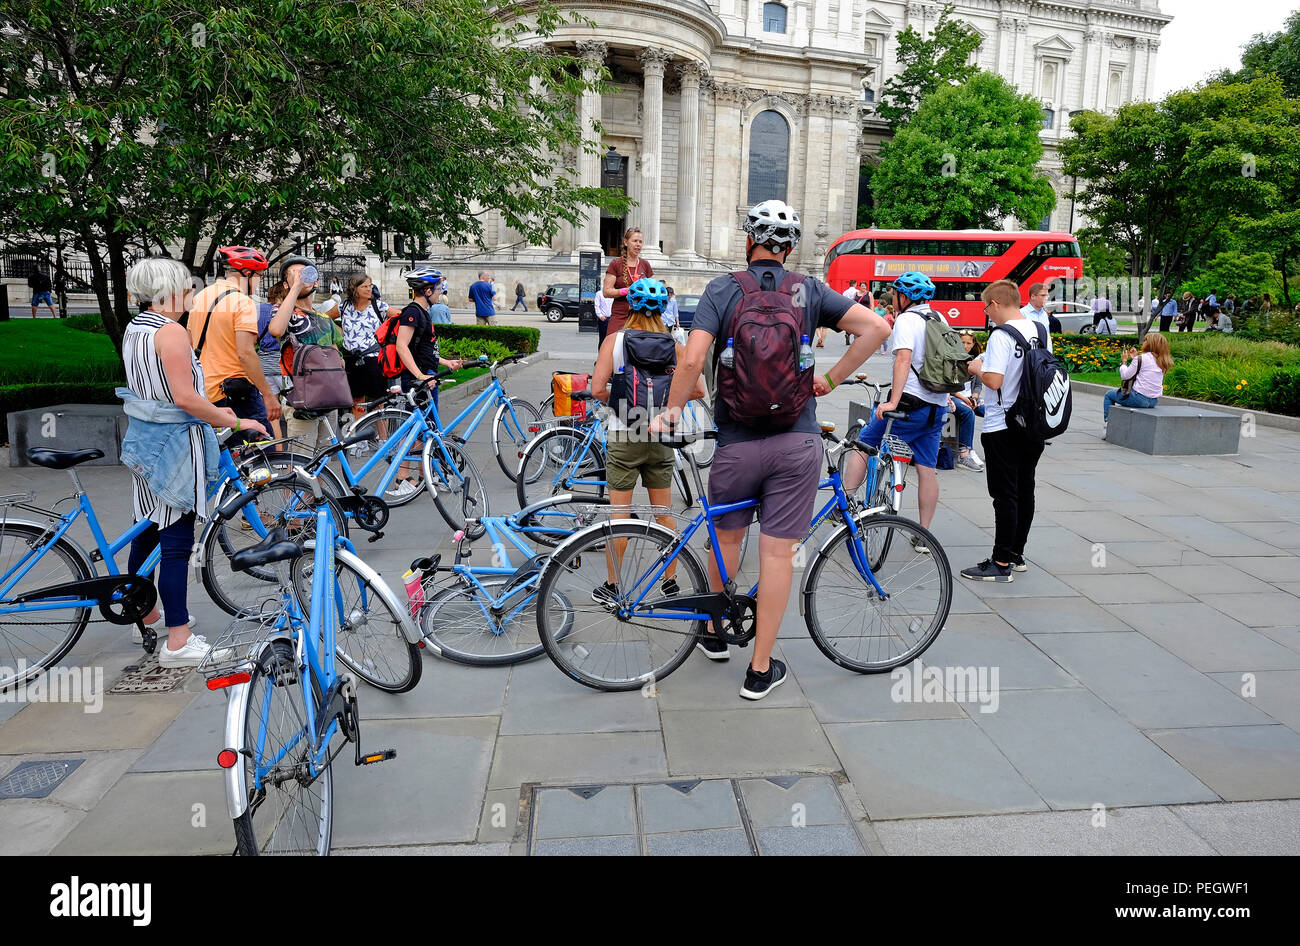 cycling guided tour of central london outside st paul's cathedral, england - Stock Image